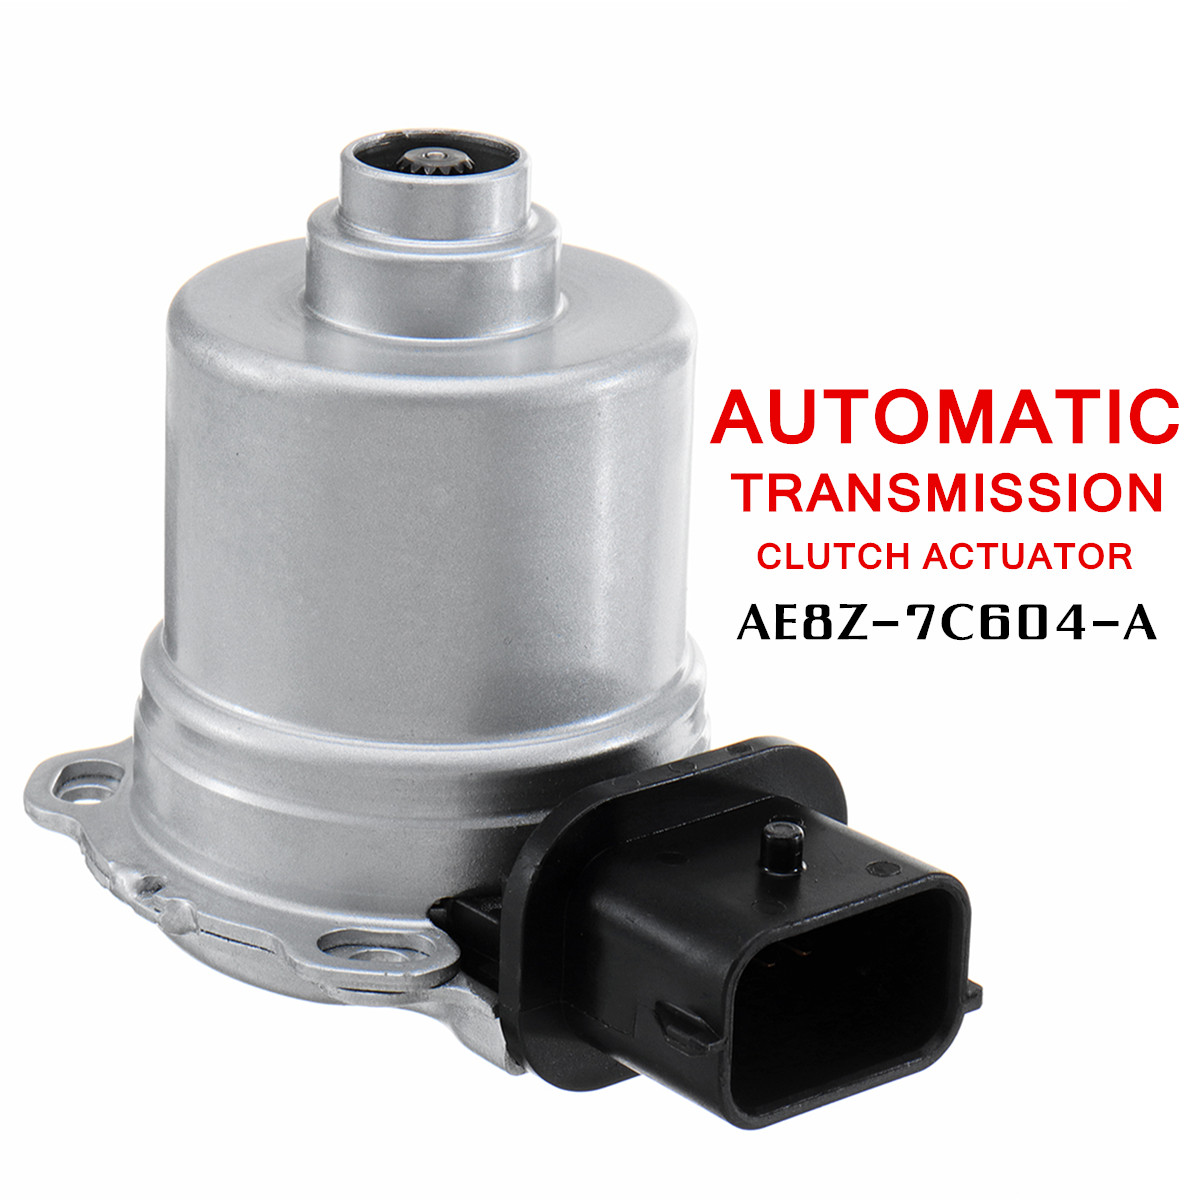 AE8Z-7C604-A Automatic Transmission Clutch Actuator For Ford Fiesta-Focus 11-17 Direct Replacement Left On Vehicle 67x95x77mm